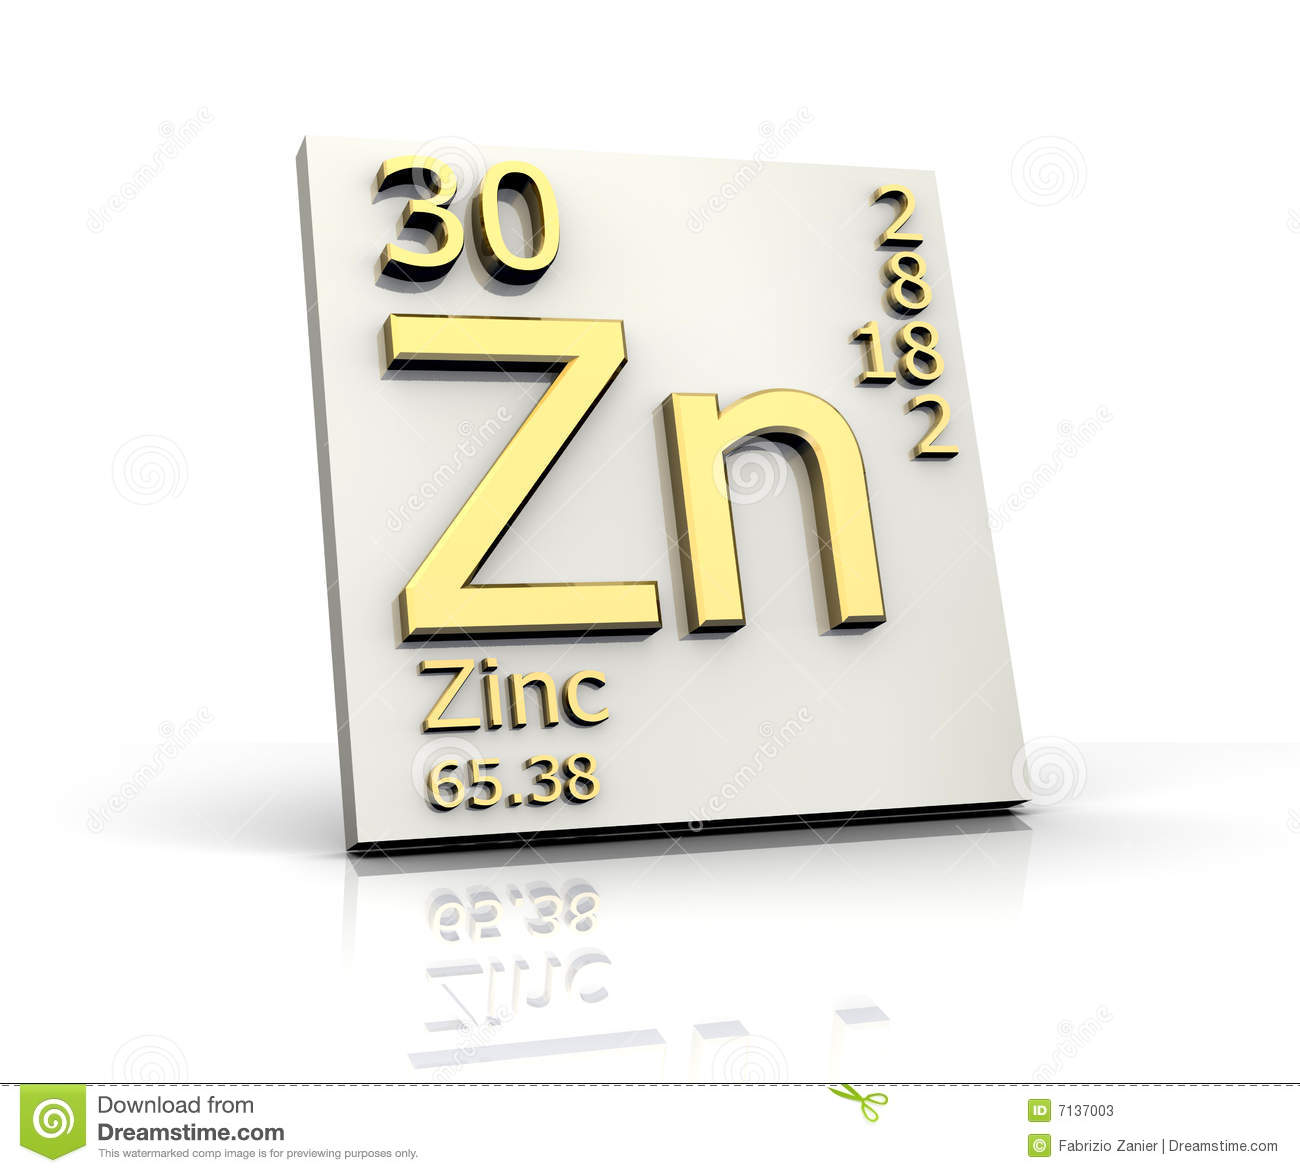 Zinc symbol periodic table choice image periodic table images zinc form periodic table of elements stock illustration image zinc form periodic table of elements gamestrikefo gamestrikefo Gallery